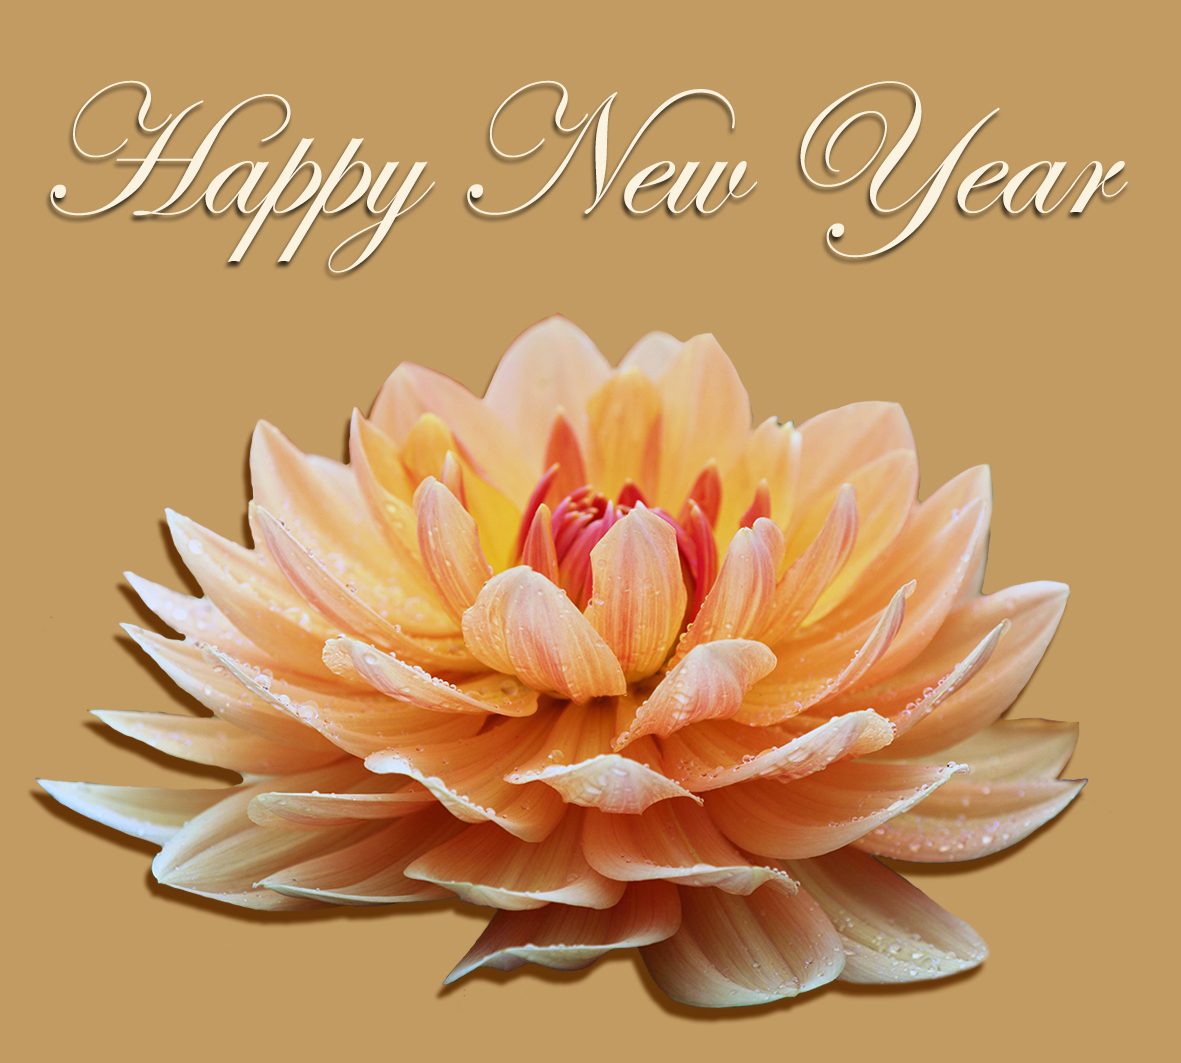 New Years clipart flower wish